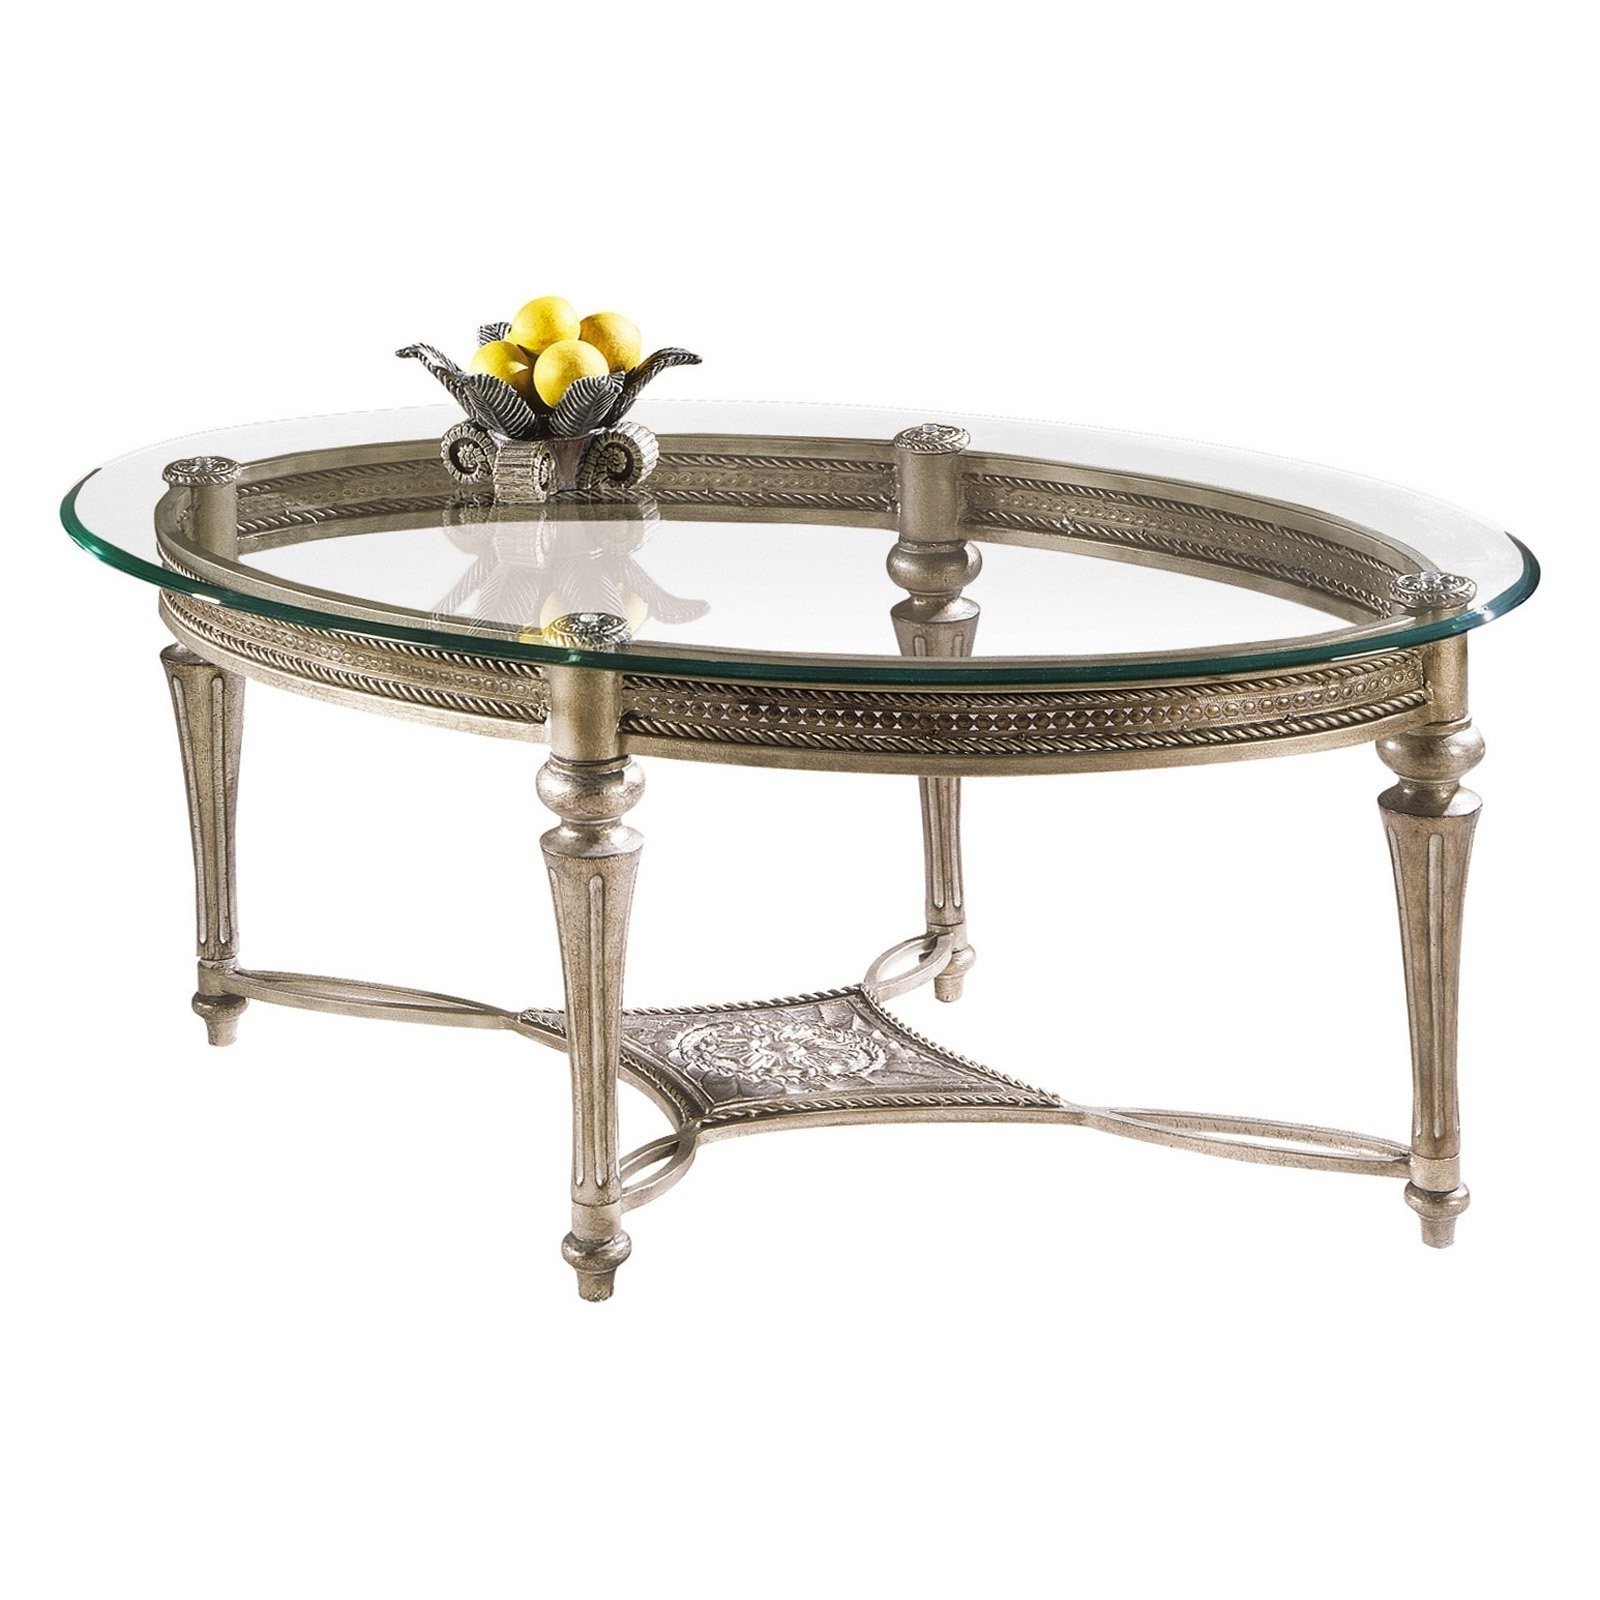 12 Luxury Oval Coffee Table Glass For Widely Used Brisbane Oval Coffee Tables (View 1 of 20)